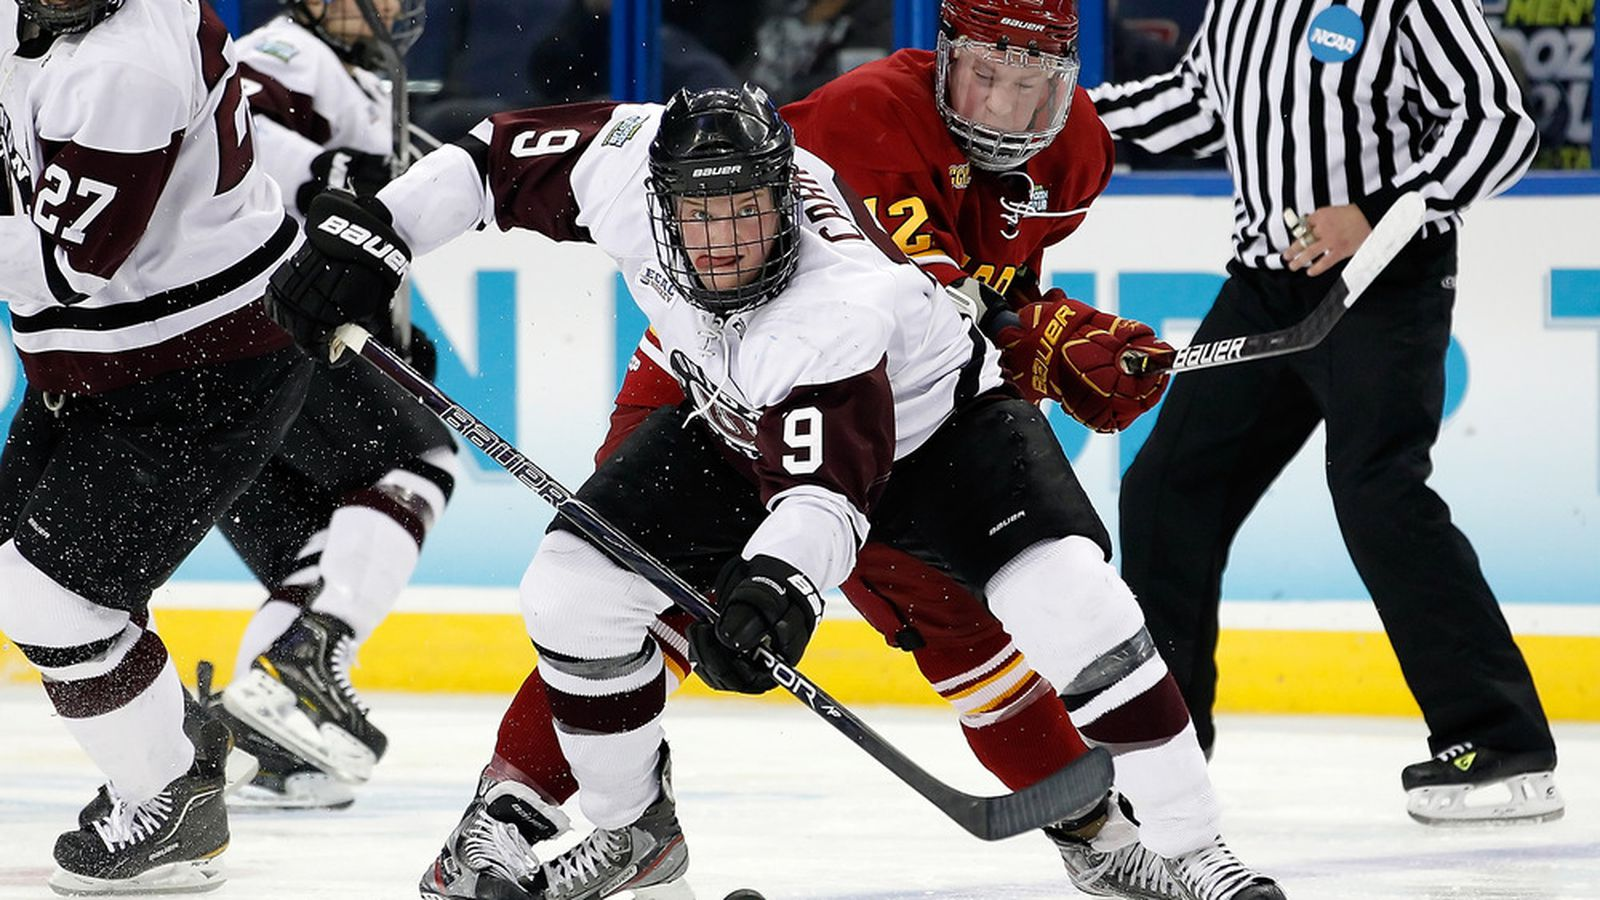 NCAA Hockey Tournament: Union leads Vermont, 2-1, after 1 ...